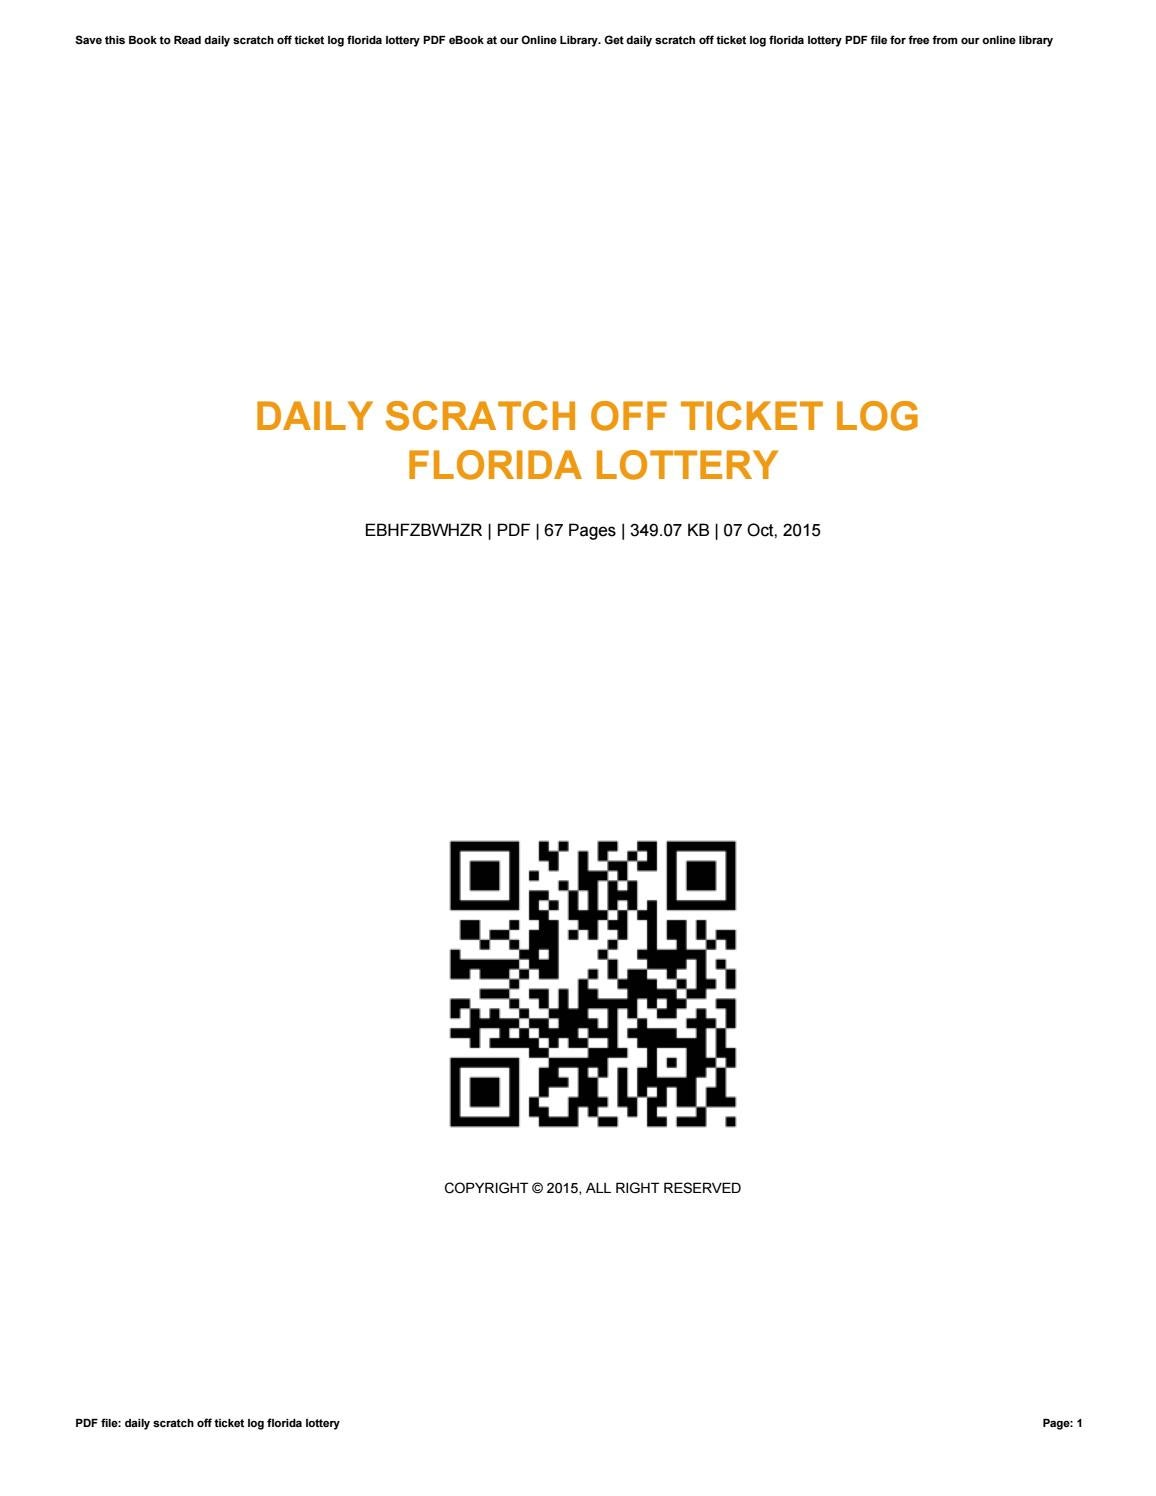 Daily scratch off ticket log florida lottery by MaryCarr4550